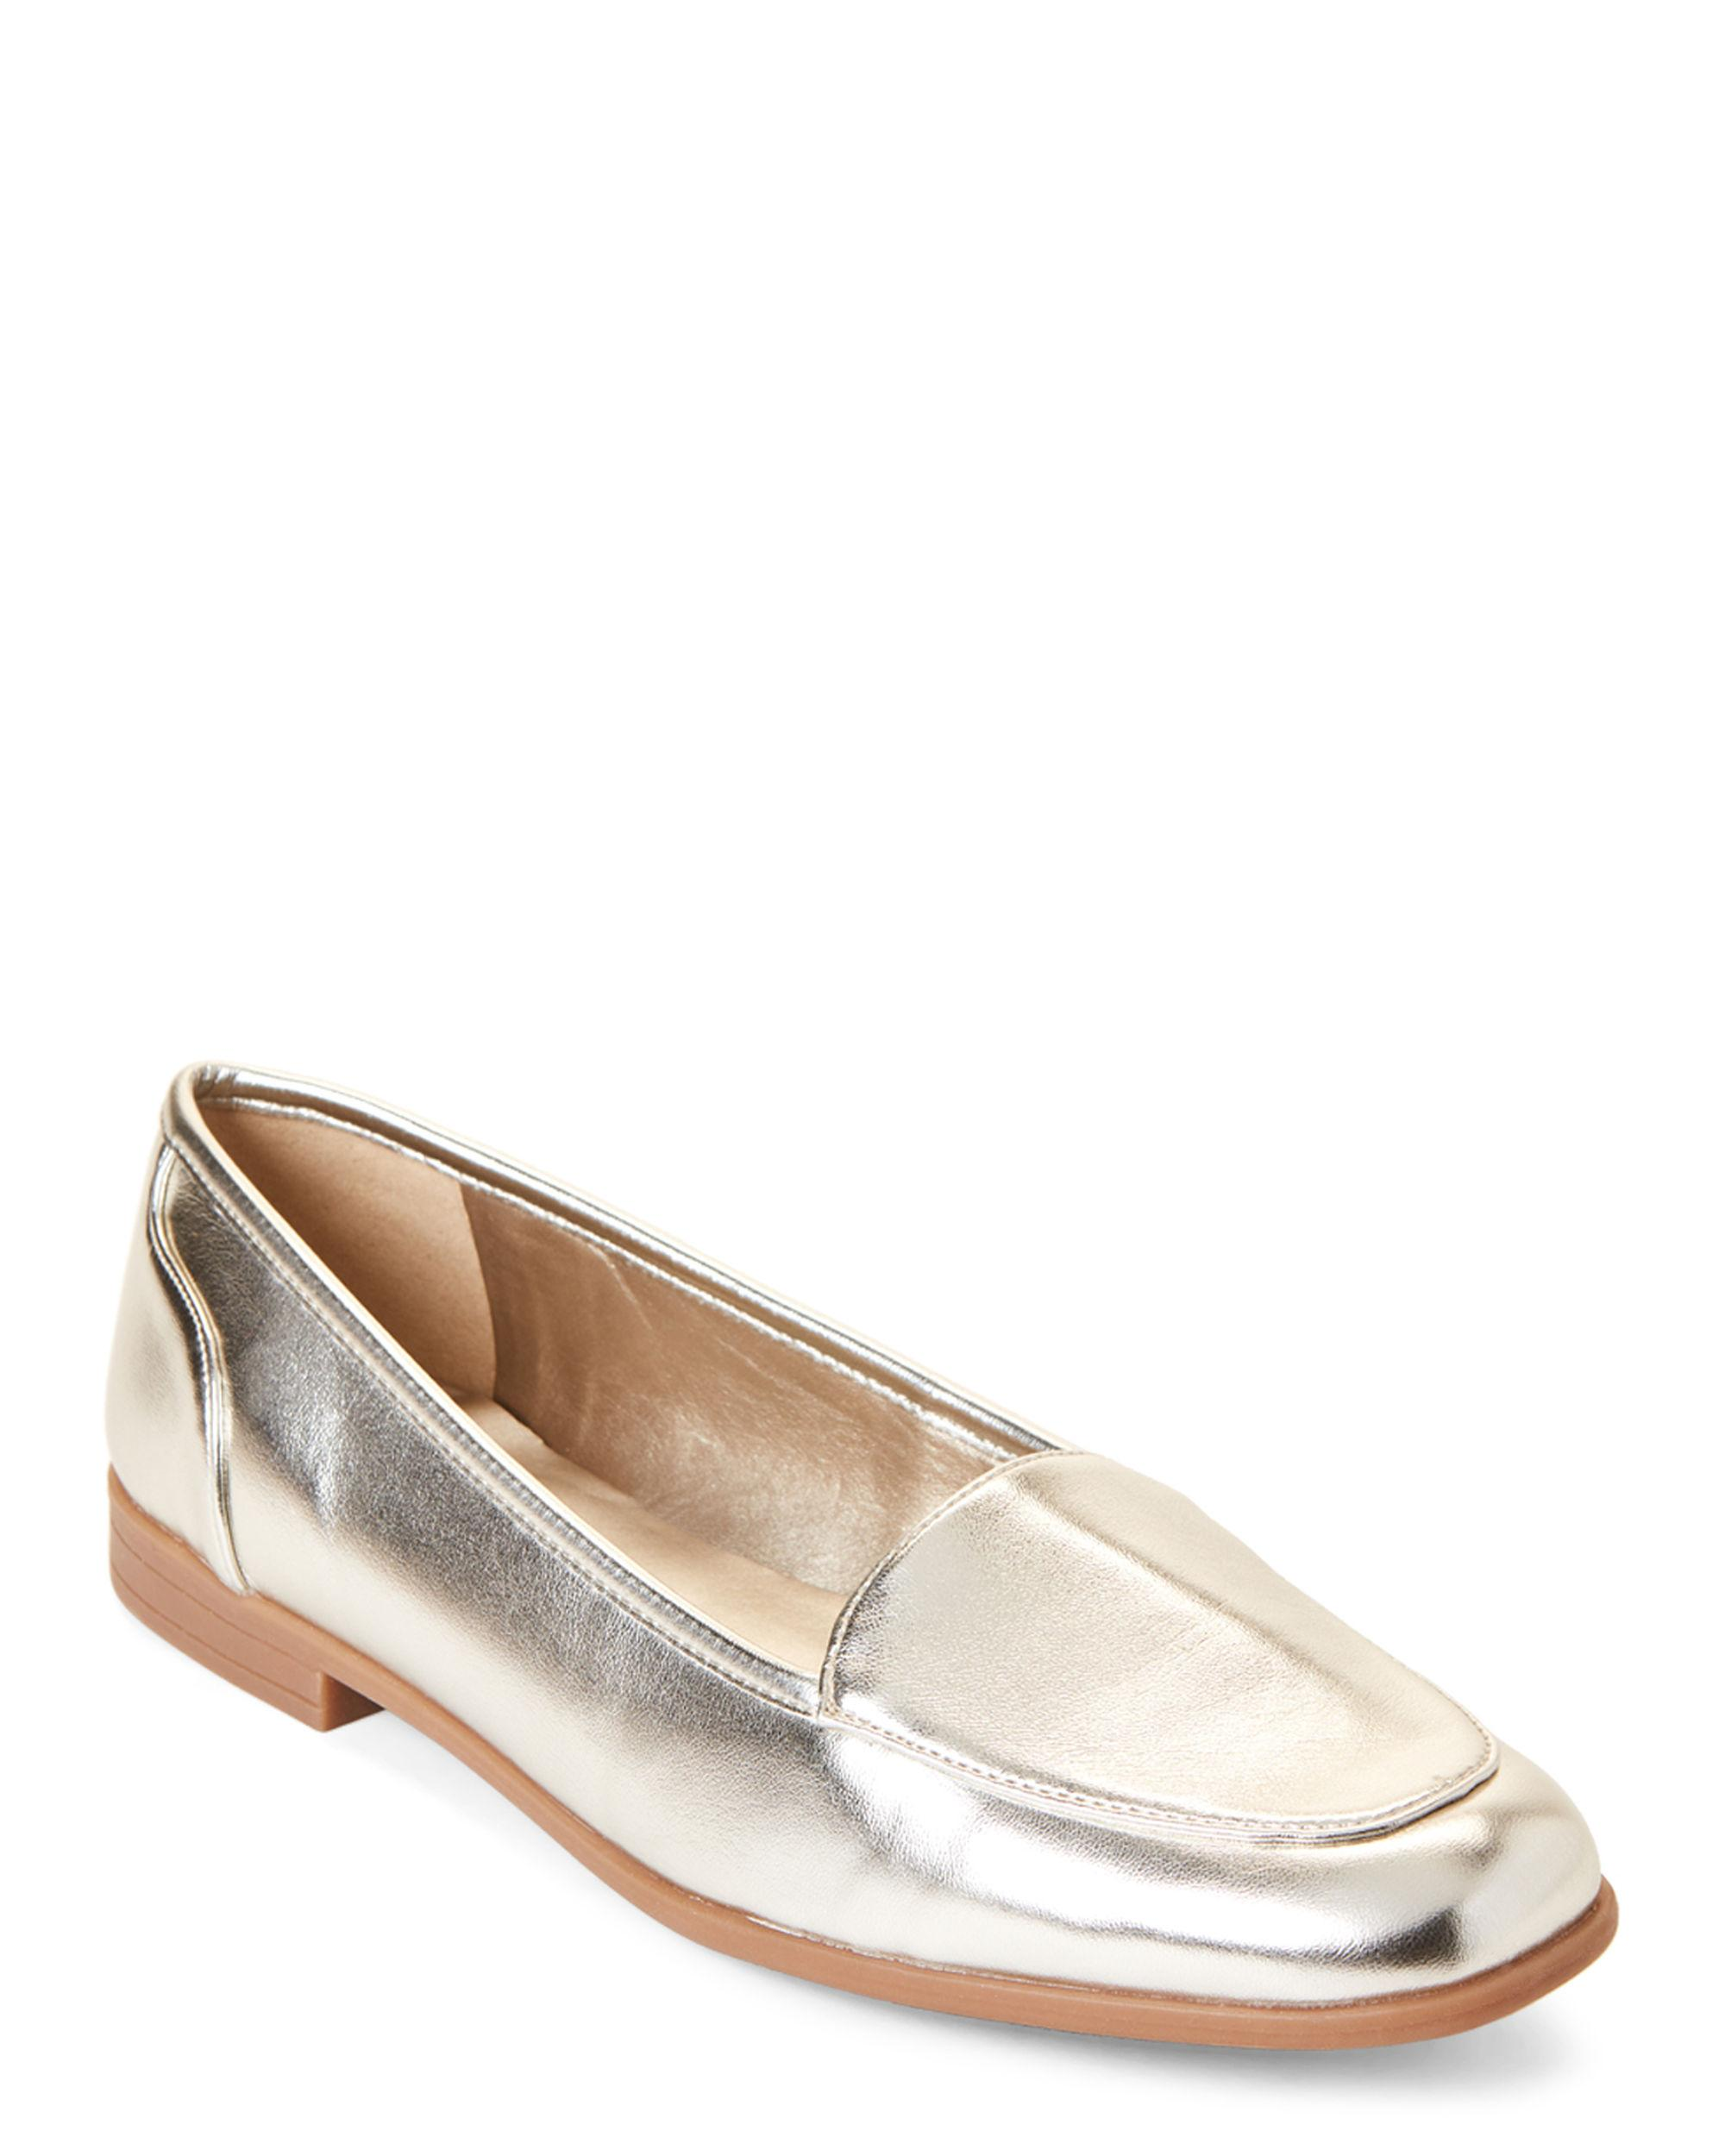 1cf829d6bb2 Lyst - Bandolino Gold Coby Metallic Loafers in Metallic